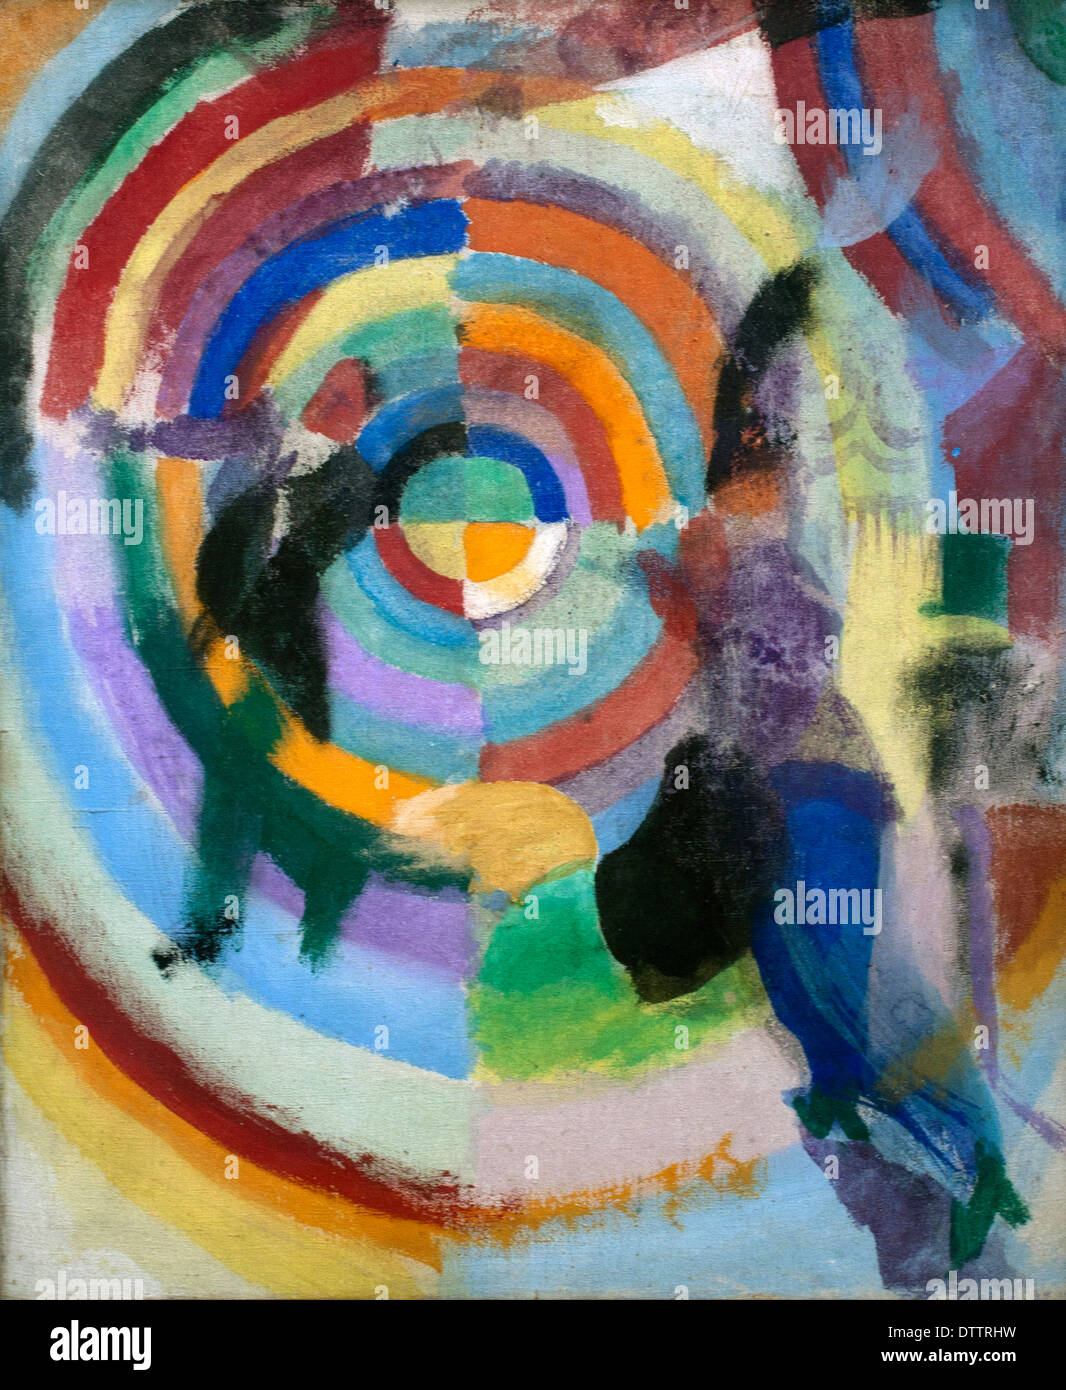 Drama Politique - Drama Policy 1914 Robert Delaunay  1885-1941 France French - Stock Image